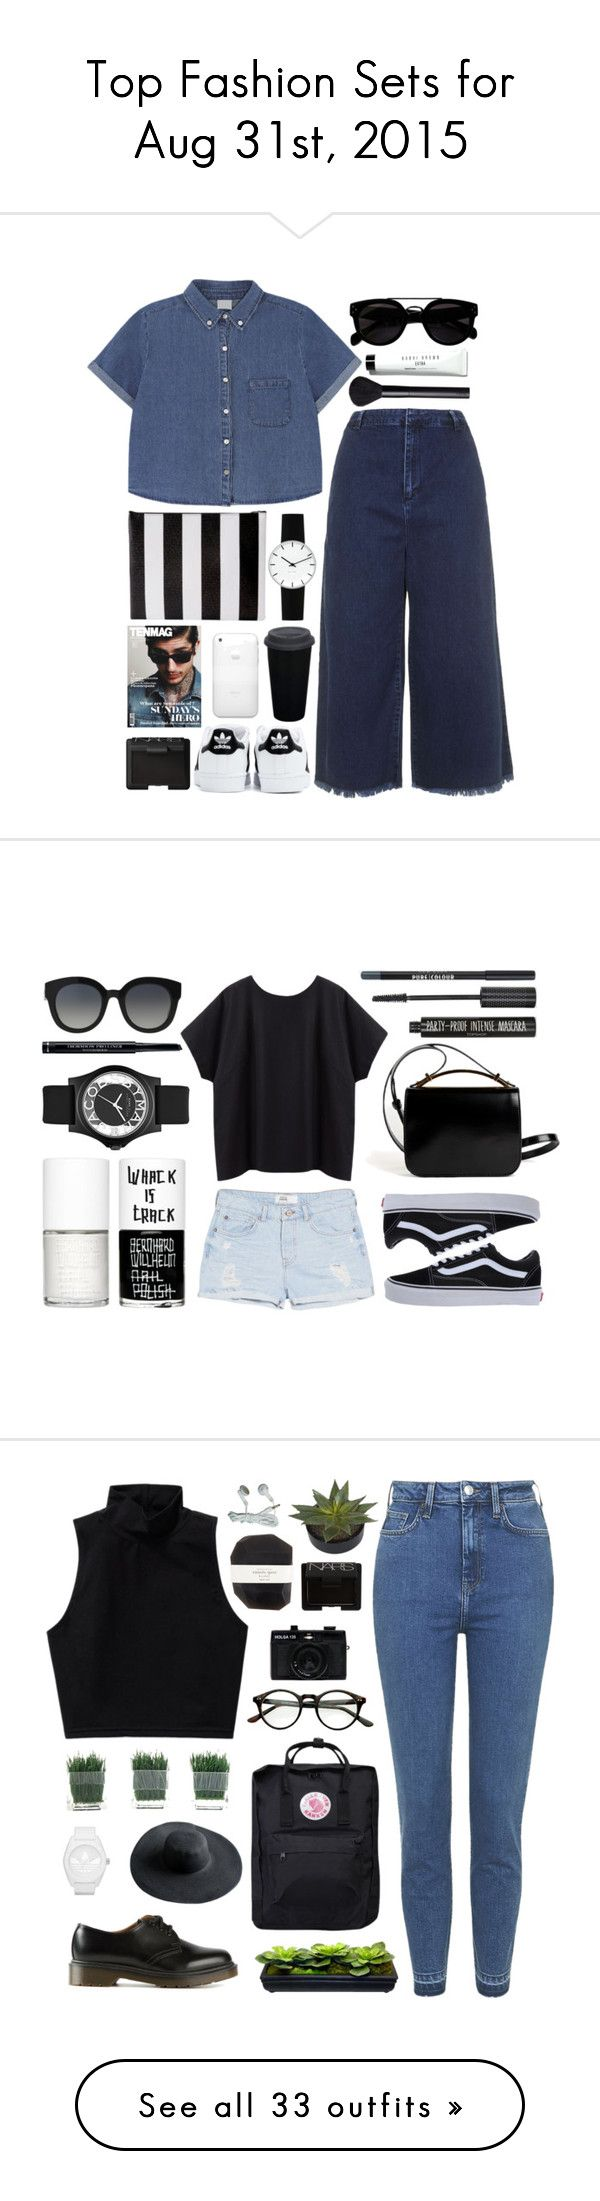 """Top Fashion Sets for Aug 31st, 2015"" by polyvore ❤ liked on Polyvore featuring Topshop, adidas, DaBaGirl, Rosendahl, NARS Cosmetics, Bobbi Brown Cosmetics, La Garçonne Moderne, Givenchy, Dolce&Gabbana and Vans"